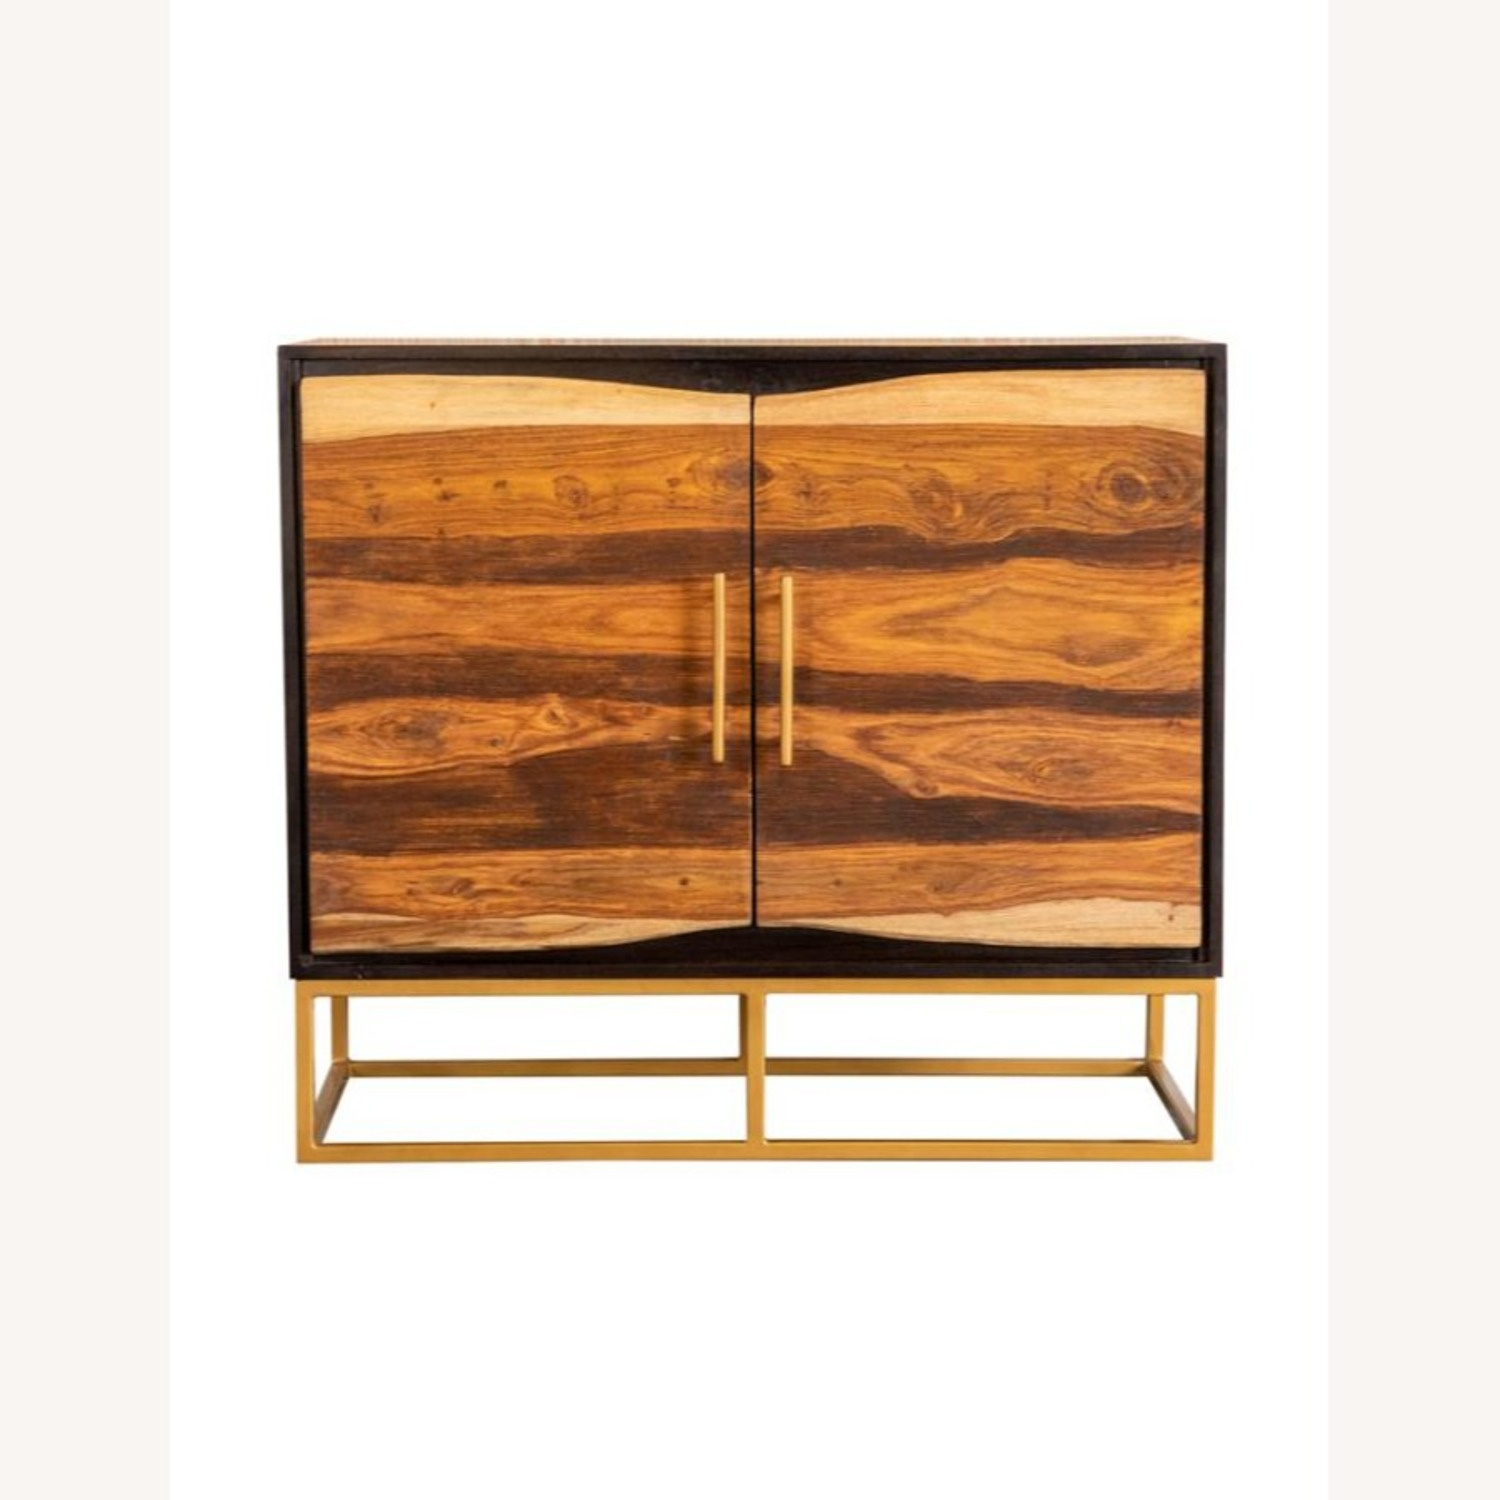 Accent Cabinet In Black Walnut & Gold Finish - image-0